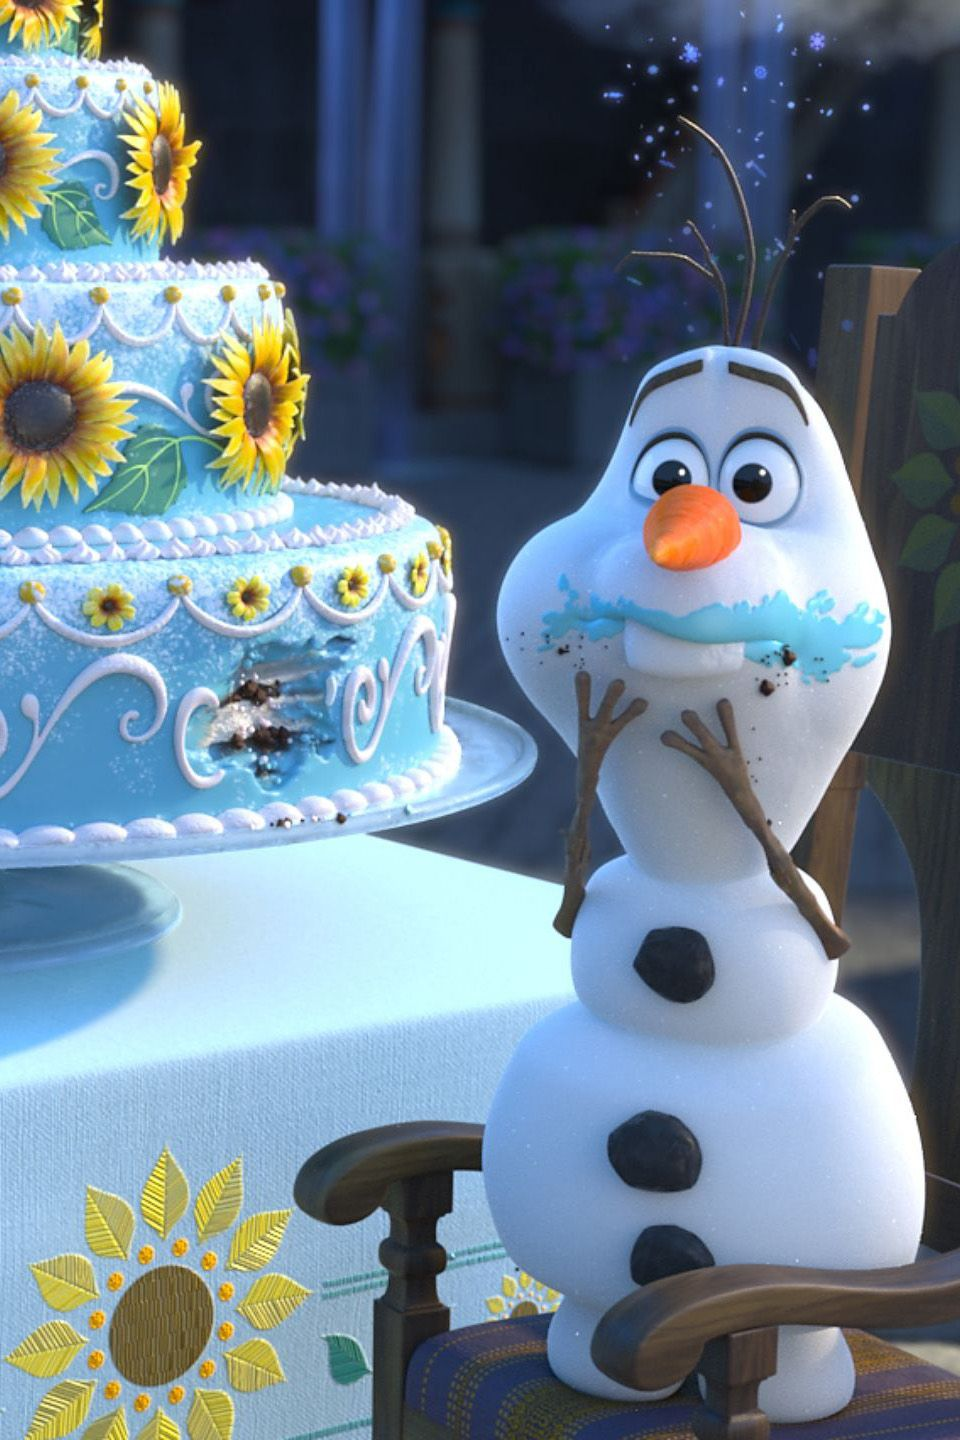 """Get a Magical Sneak Peek of Disney's New Short, Frozen Fever! We were all diagnosed with an affliction known as """"Frozen Fever"""" around this time last year, but now that means something totally different. Smash hit Frozen has inspired a short film, titled Frozen Fever, that will play in theaters before Cinderella. Elsa is preparing to throw Anna a birthday bash with all of her friends, including a cake-hungry Olaf. The seven-minute film will feature a new song, too!"""